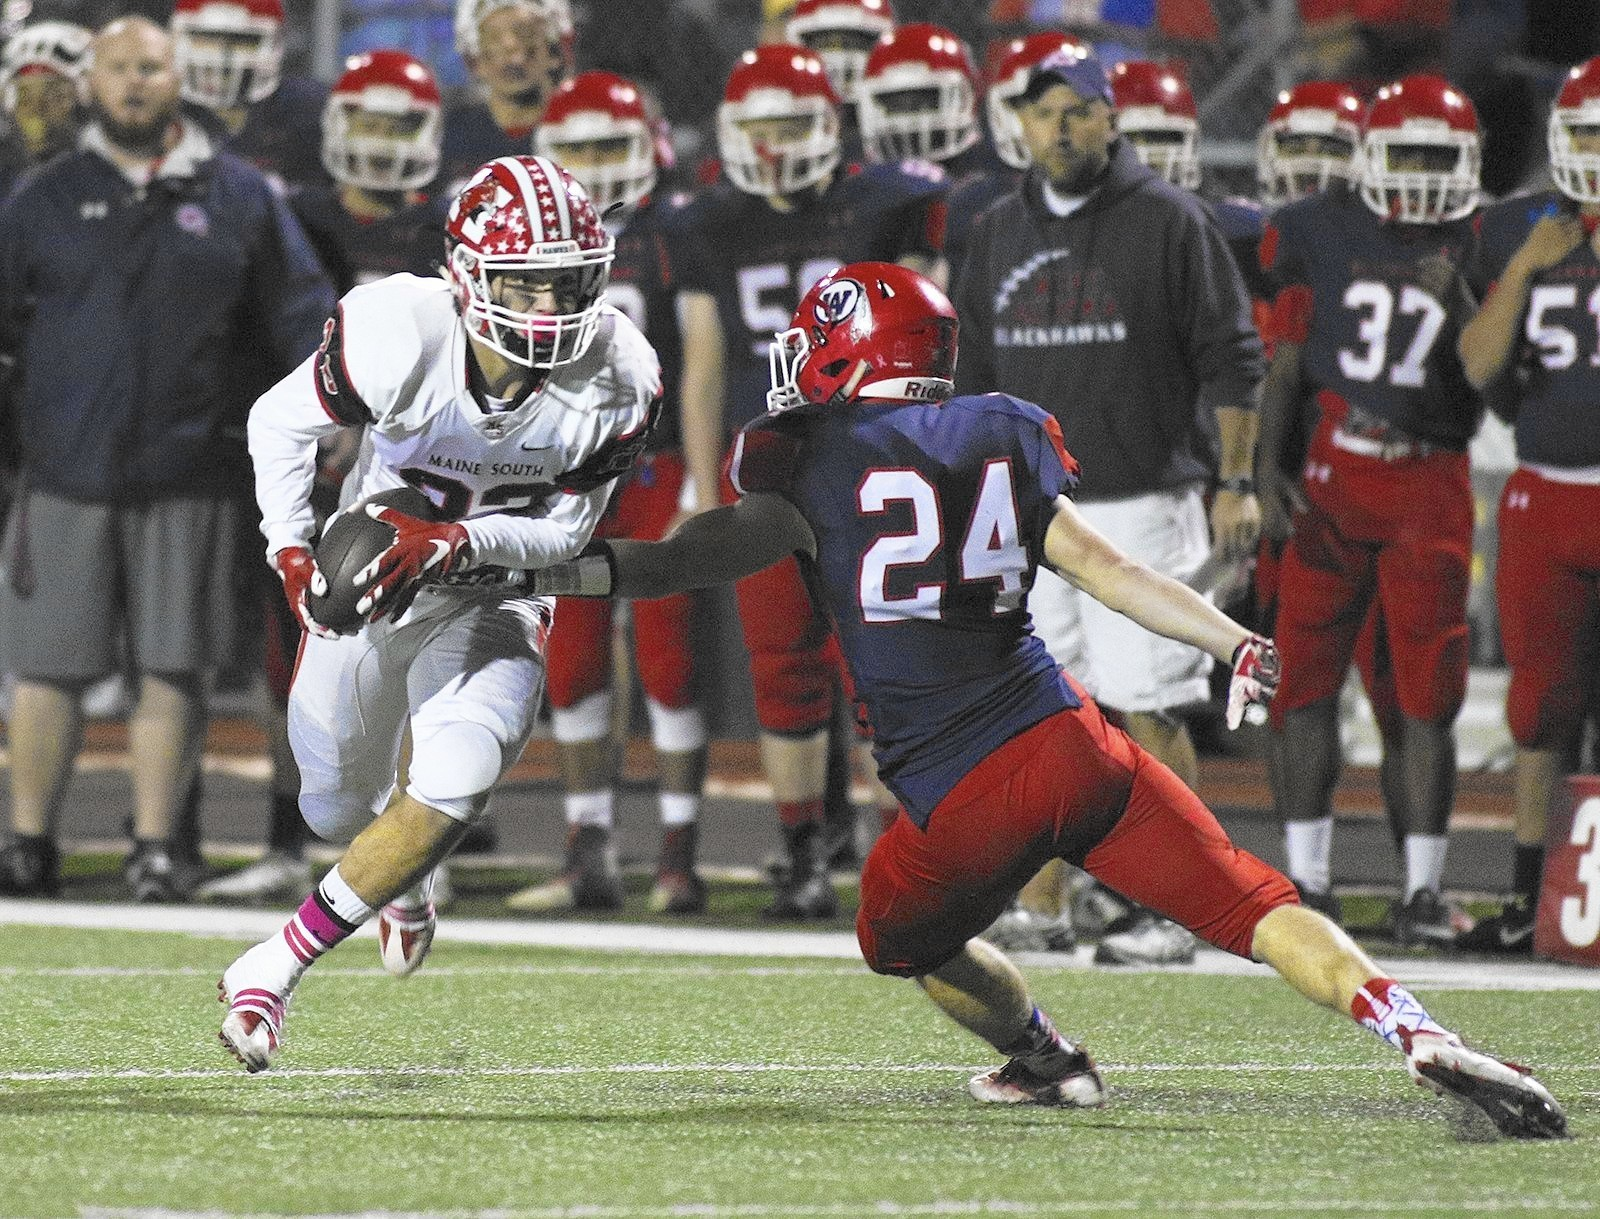 Class 8A football semifinal preview: Maine South vs ...